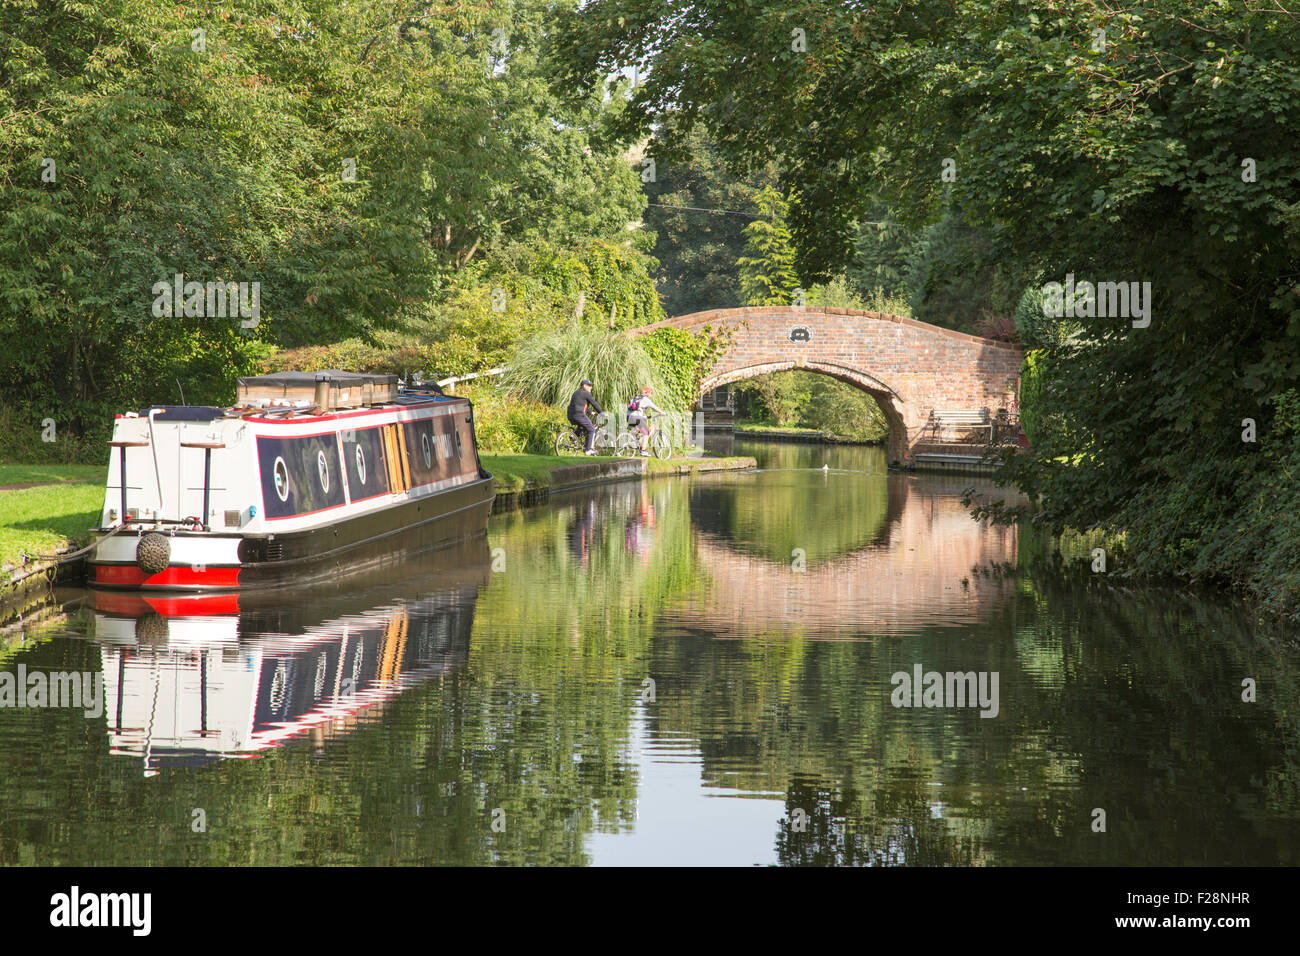 Narrowboat on the Staffs & Worcester Canal near Kinver, Staffordshire, England, UK - Stock Image